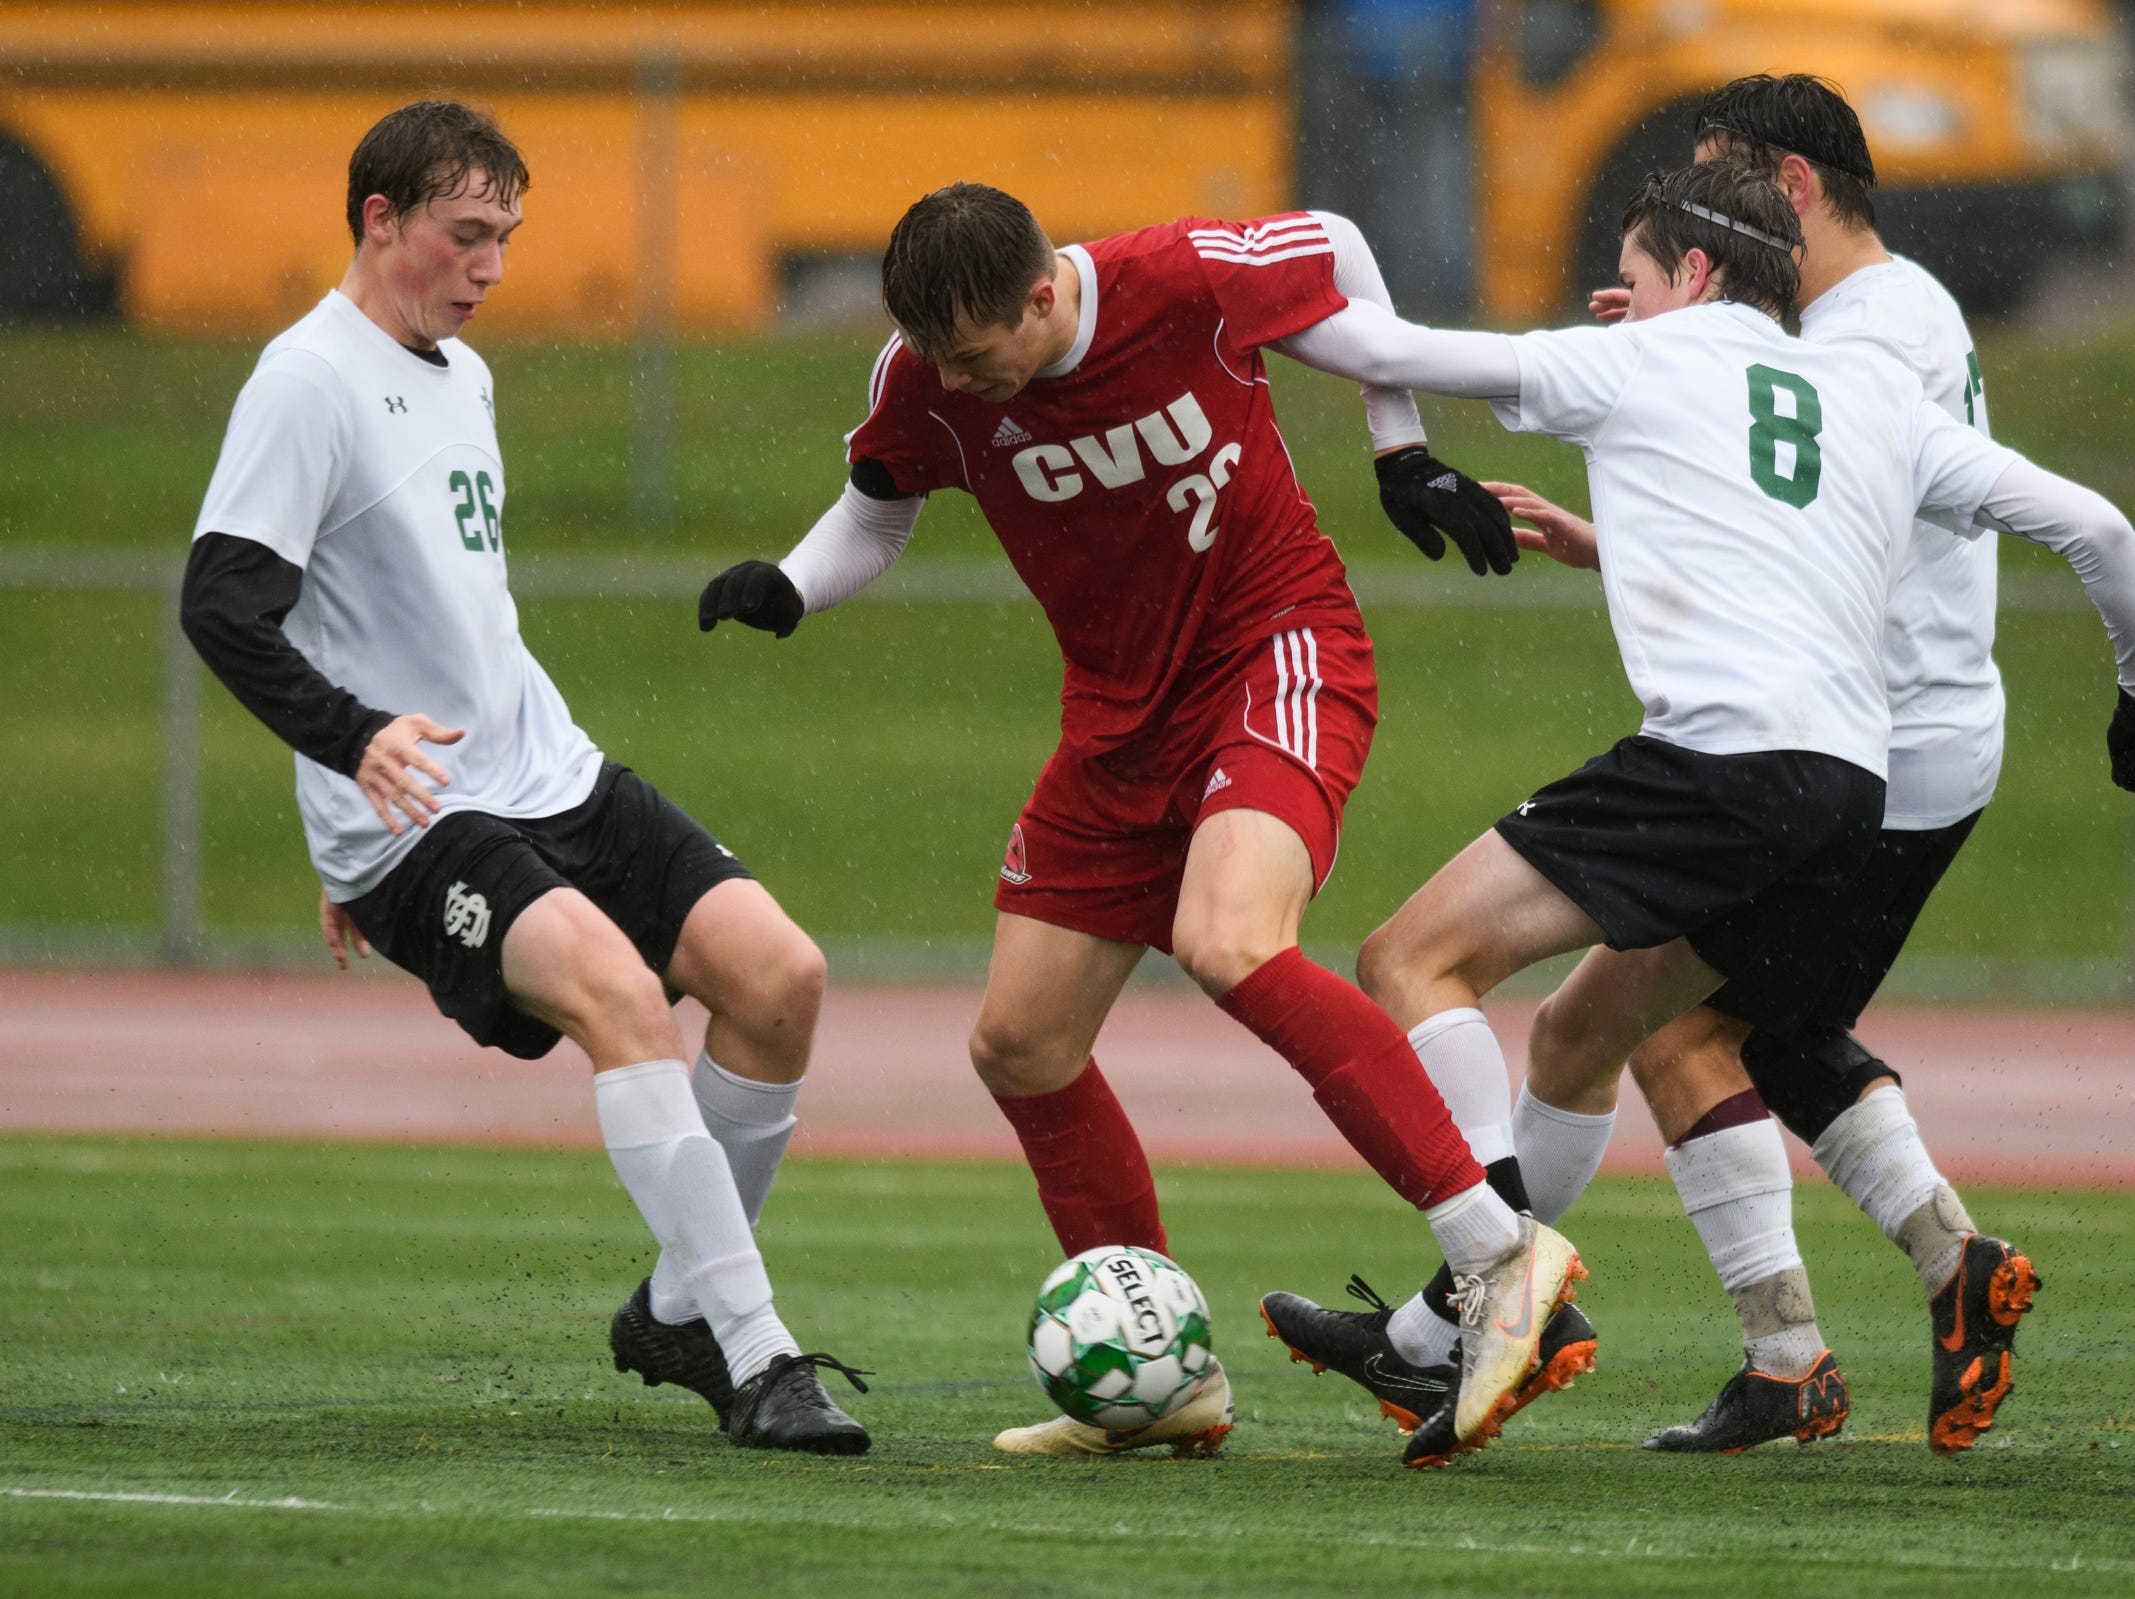 CVU's Jami Lashua (22) battles for the ball with St. Johnsbury's Thomas Zschau (8), Max Whitchurch (26) and Alex Gingue (17) during the Division I boys soccer championship game between the St. Johnsbury Hilltoppers and the Champlain Valley Union Redhawks at Buck Hard Field on Saturday morning November 3, 2018 in Burlington.